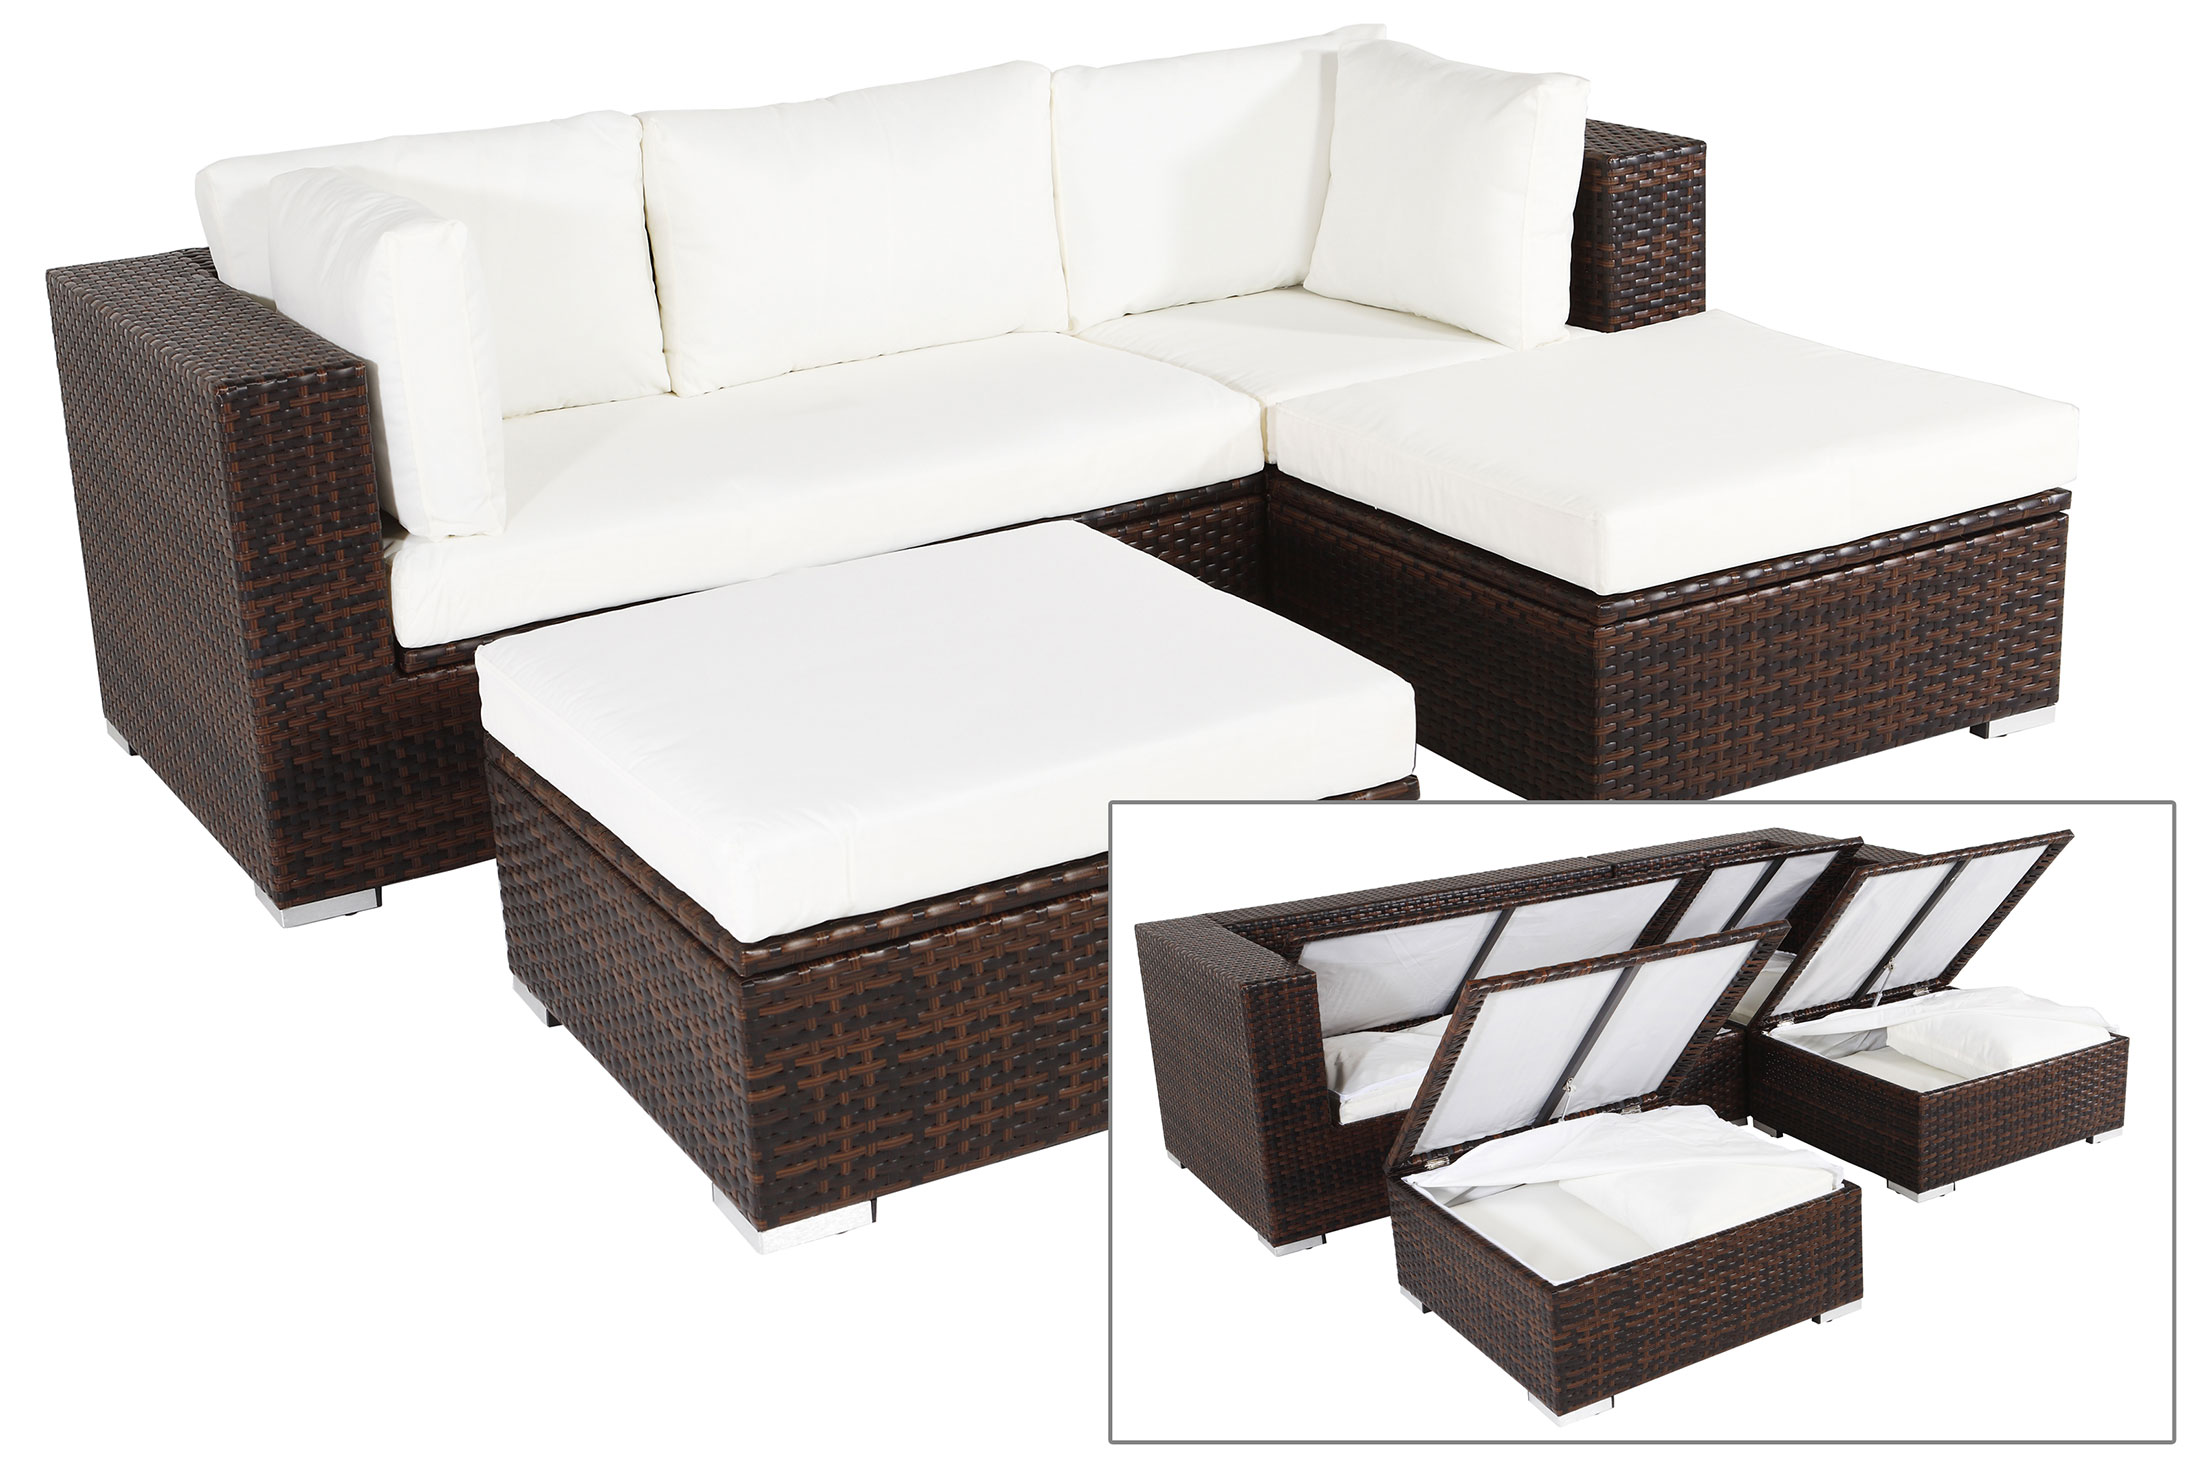 gnstige set elegant amazing gnstige gartenmbel set genial gartenmbel set rattan with gnstige. Black Bedroom Furniture Sets. Home Design Ideas